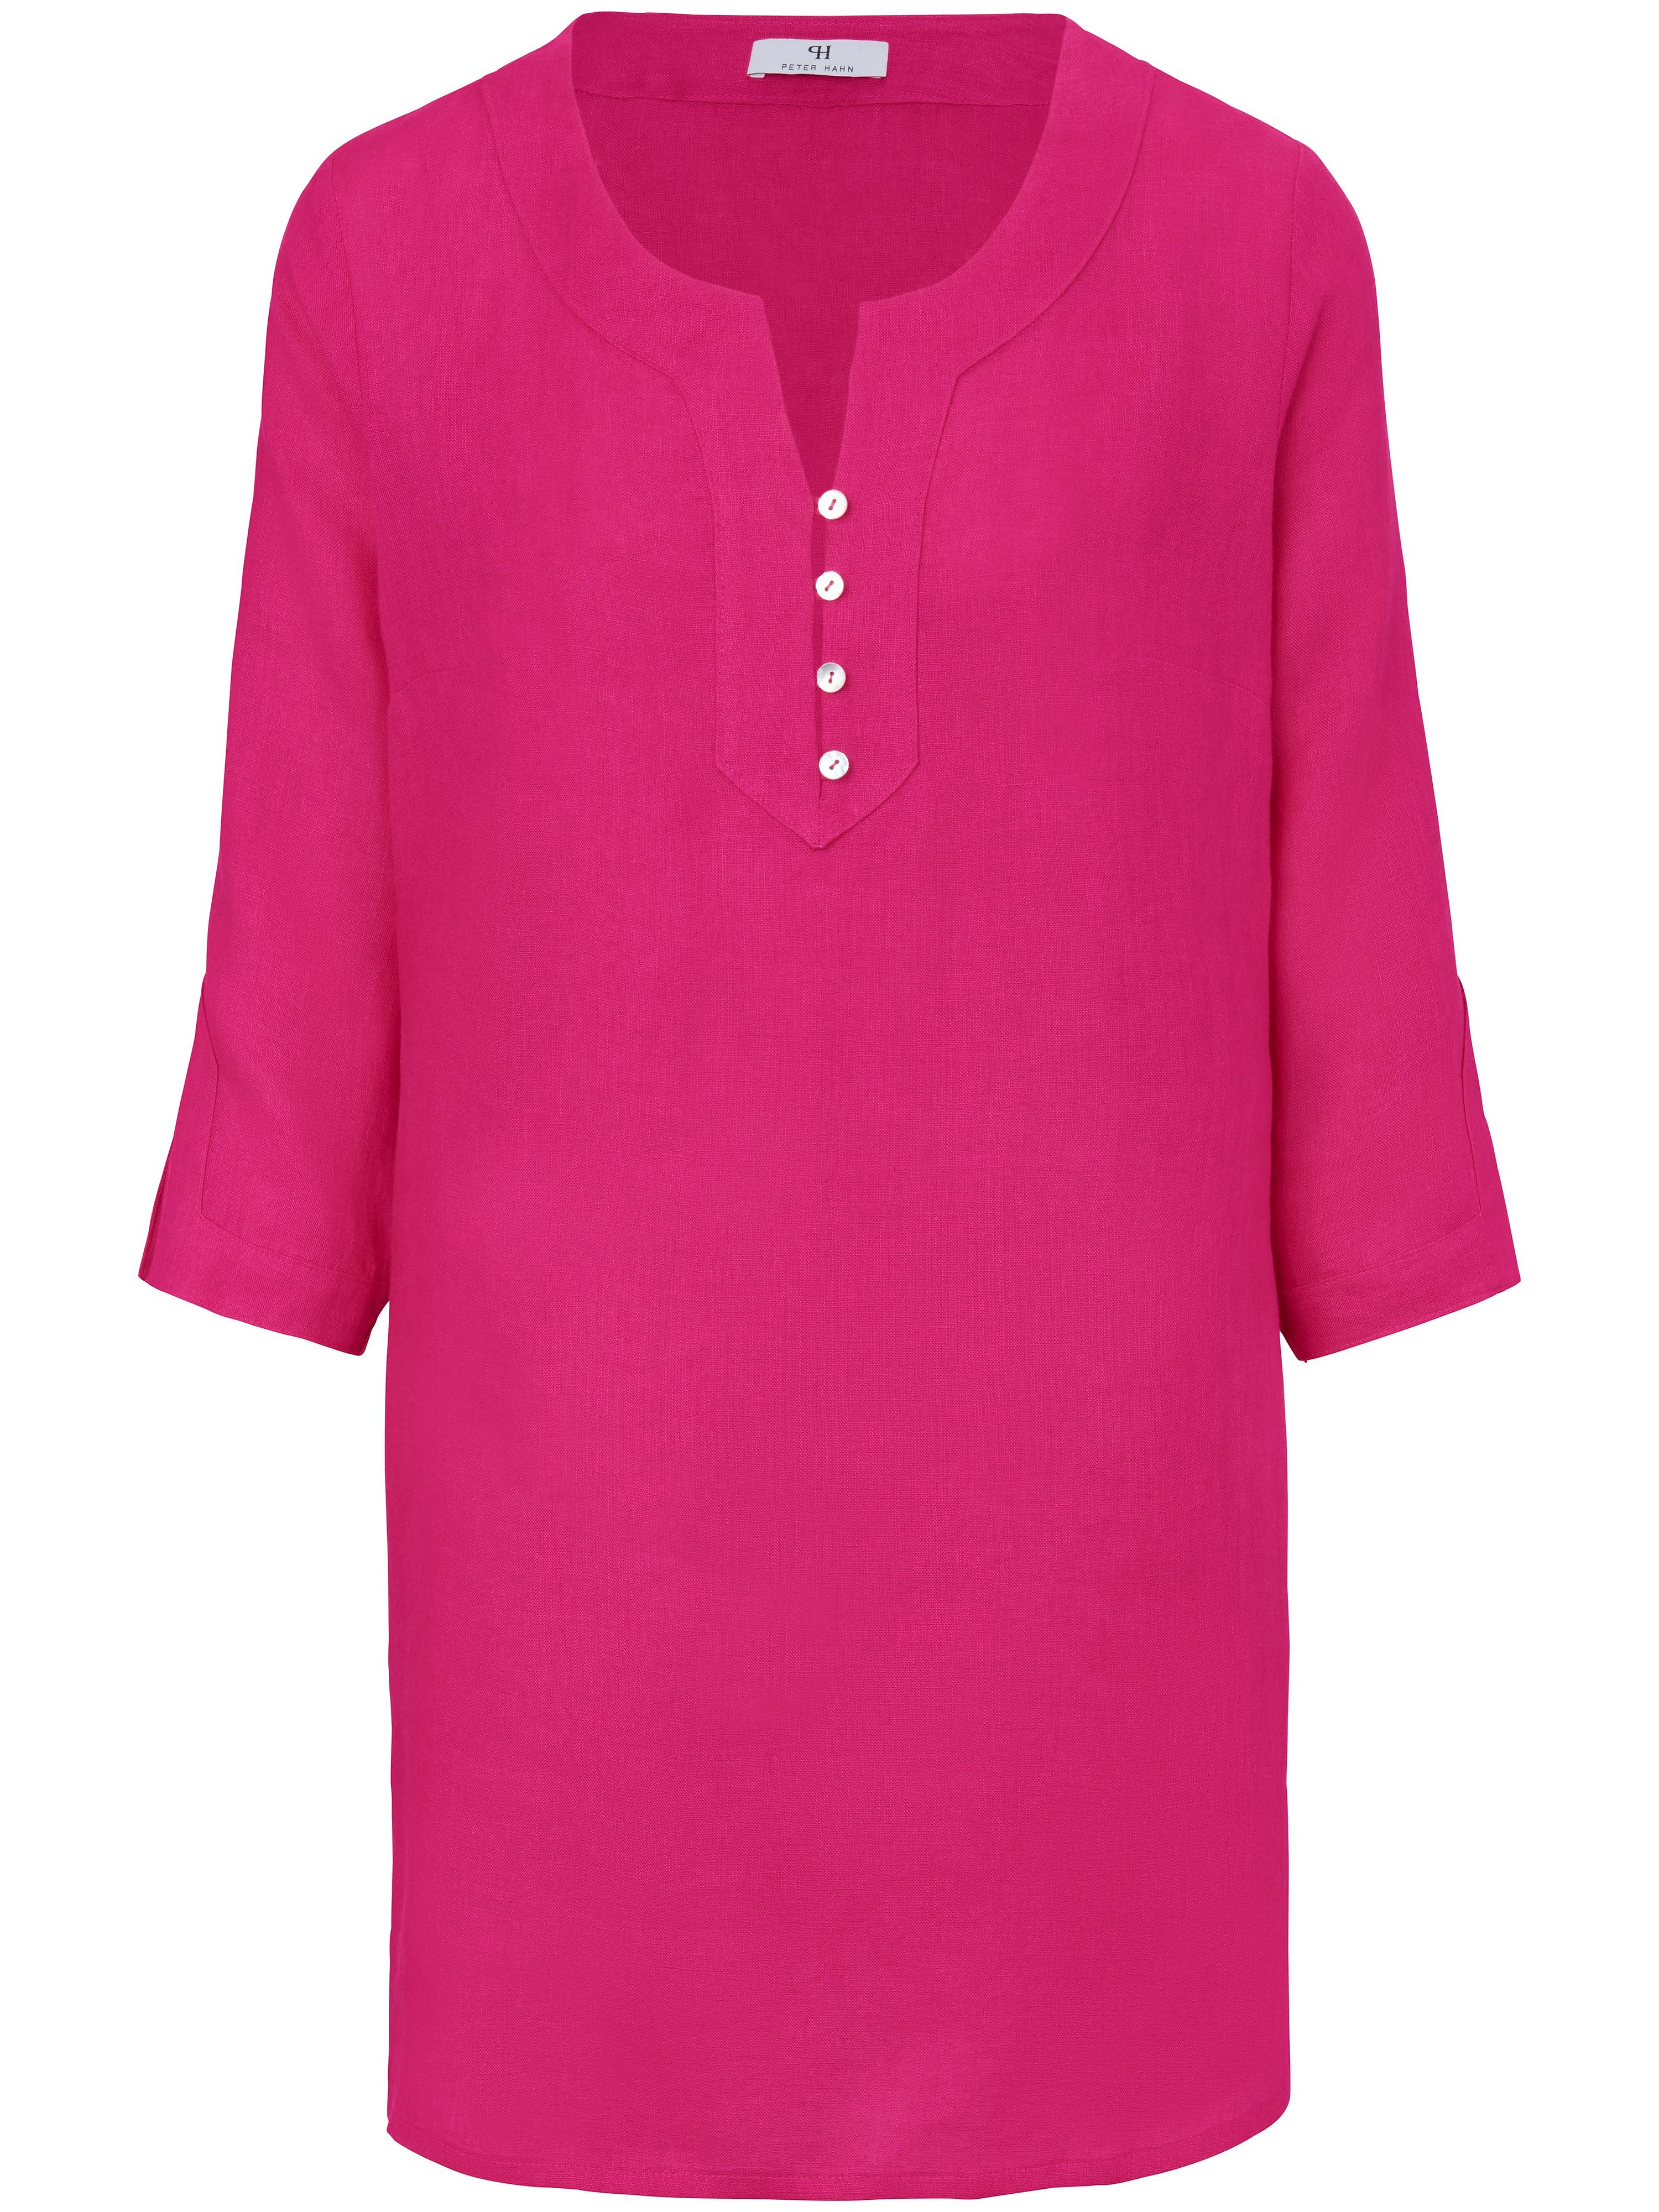 Tunic in 100% linen Peter Hahn bright pink